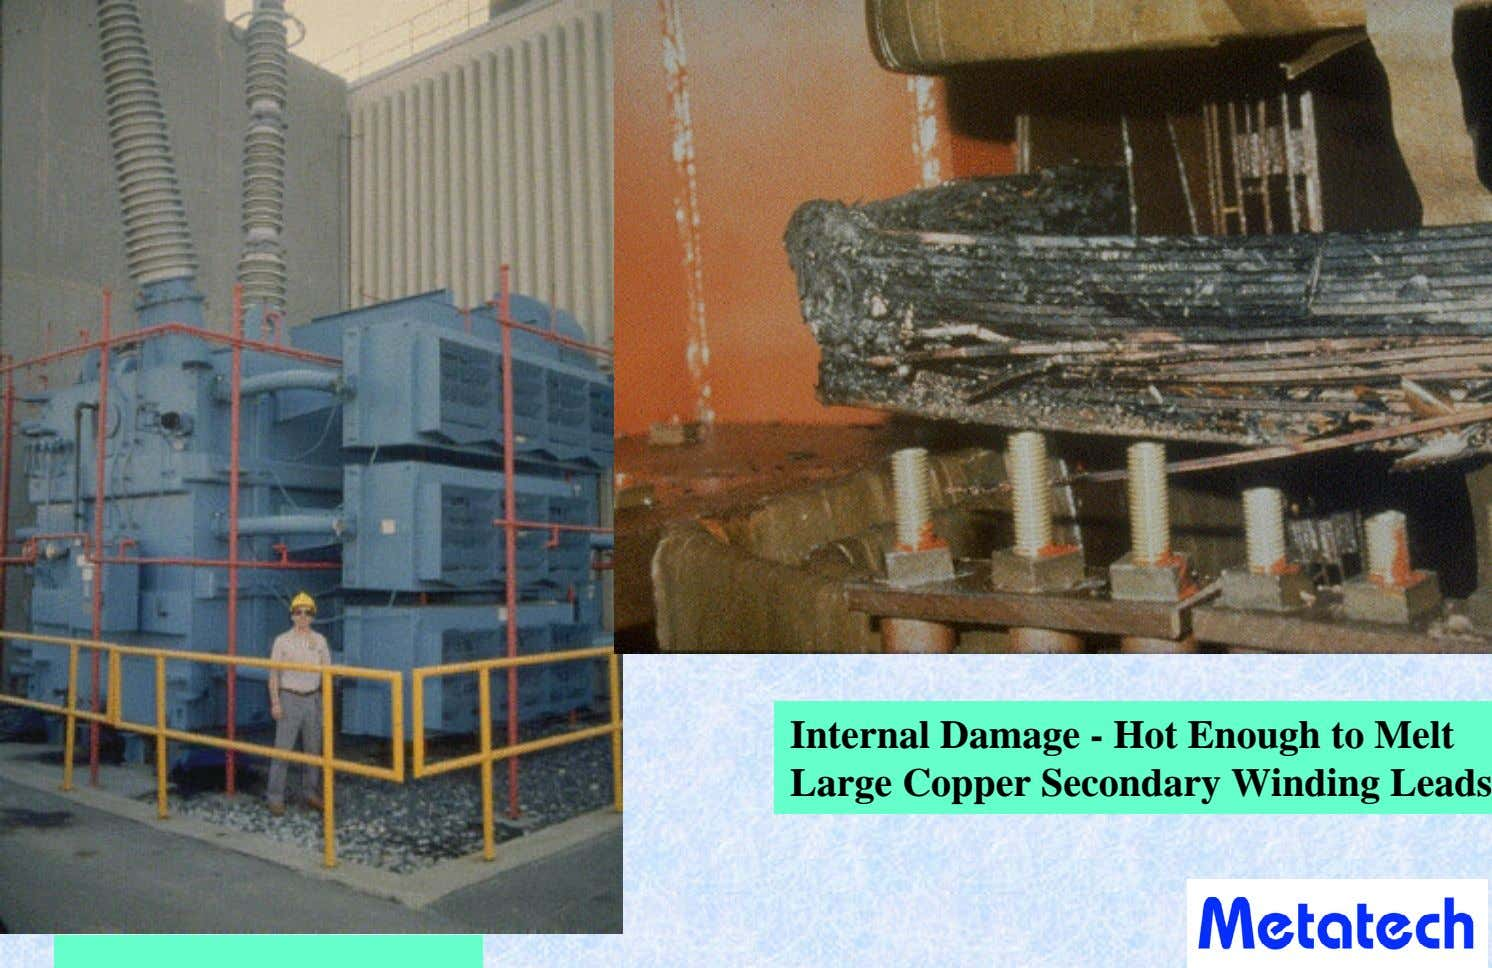 Internal Damage - Hot Enough to Melt Large Copper Secondary Winding Leads 14